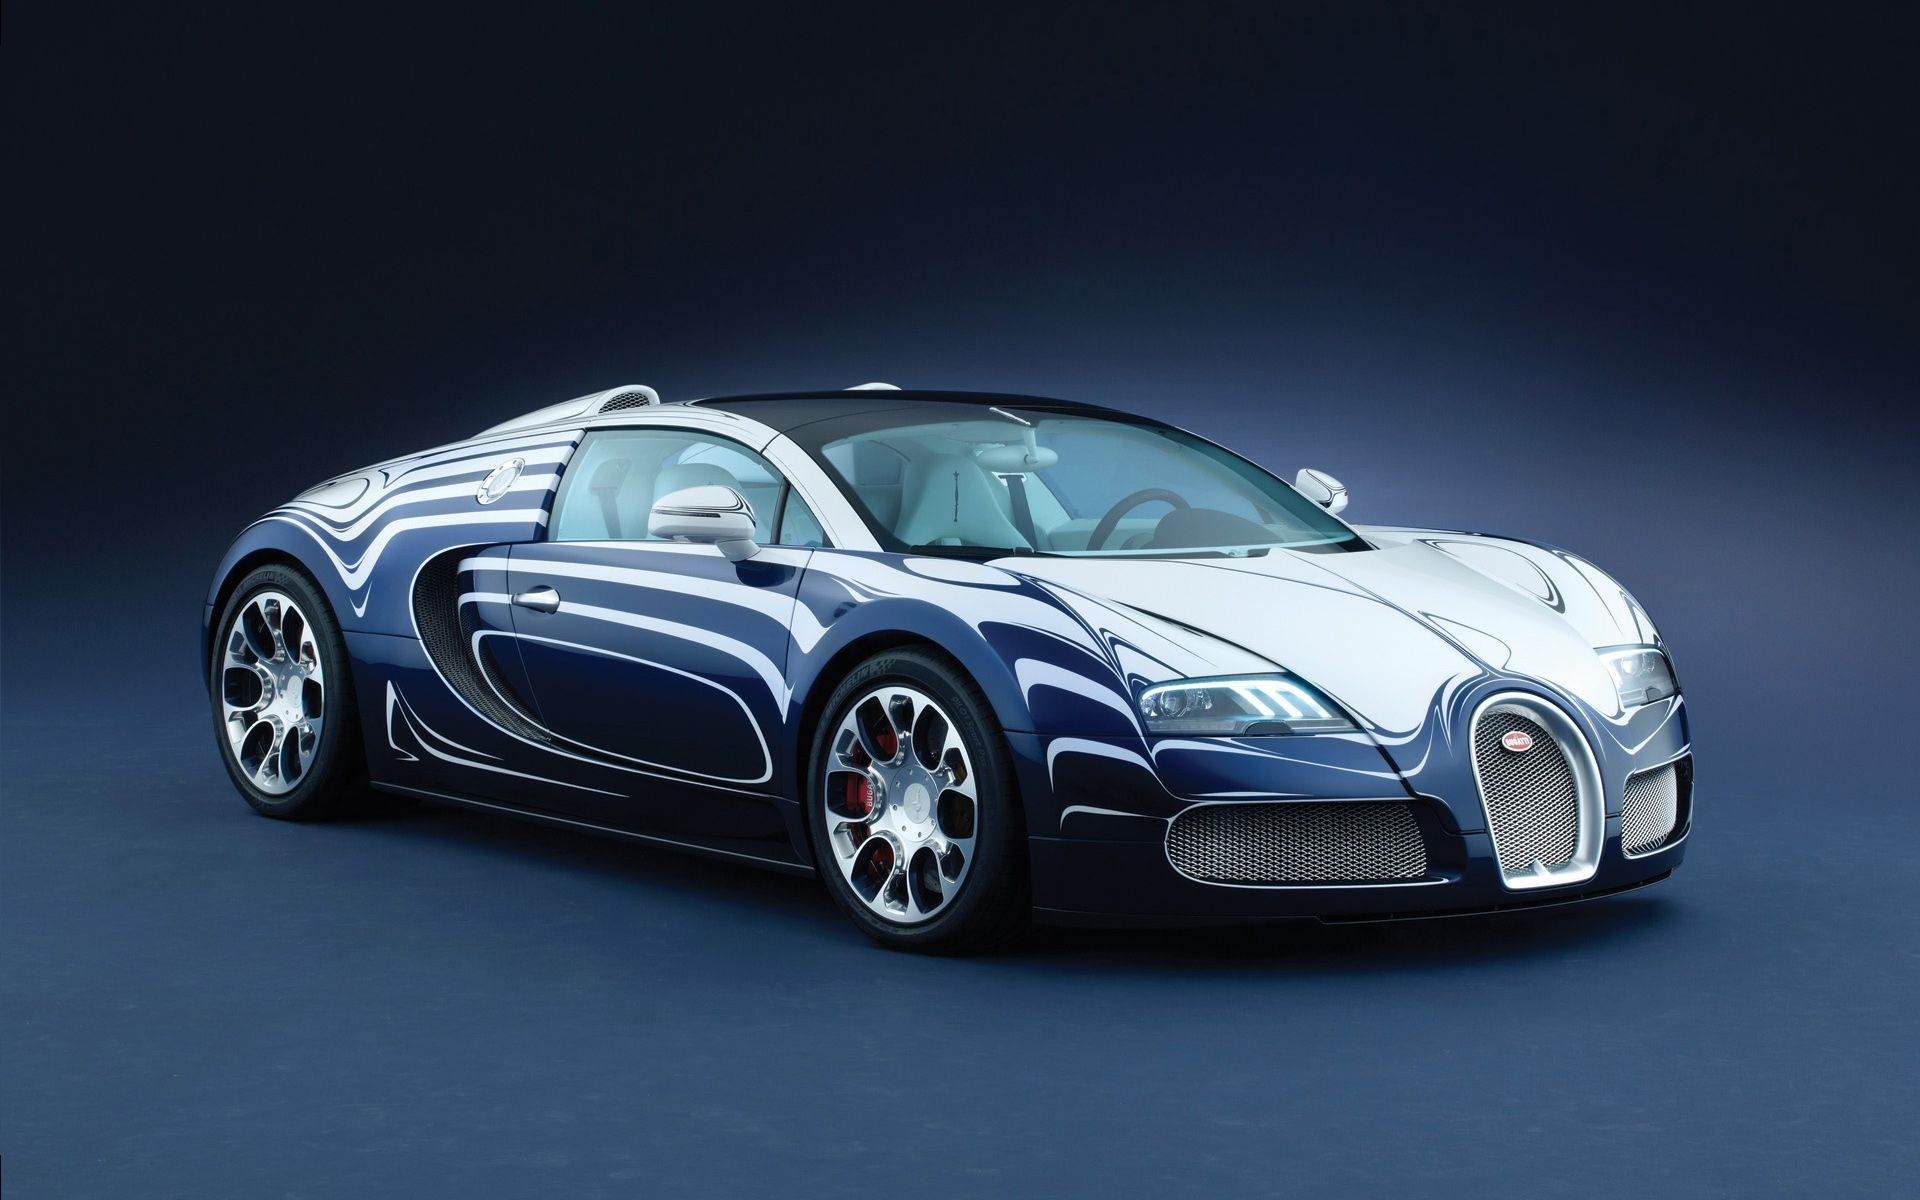 2092805d473aaf41a2835e25b4886819 Cool Bugatti Veyron Price In Uae 2015 Cars Trend